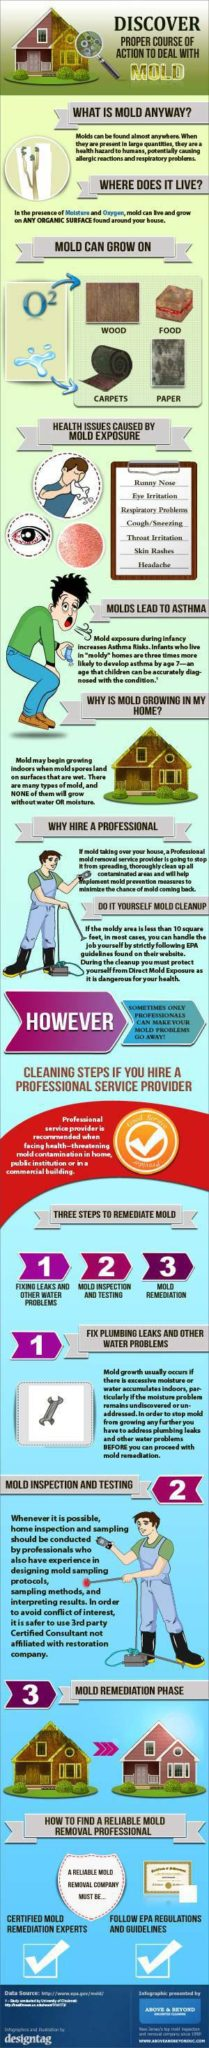 Mold Prevention: 10 Tips Summary!